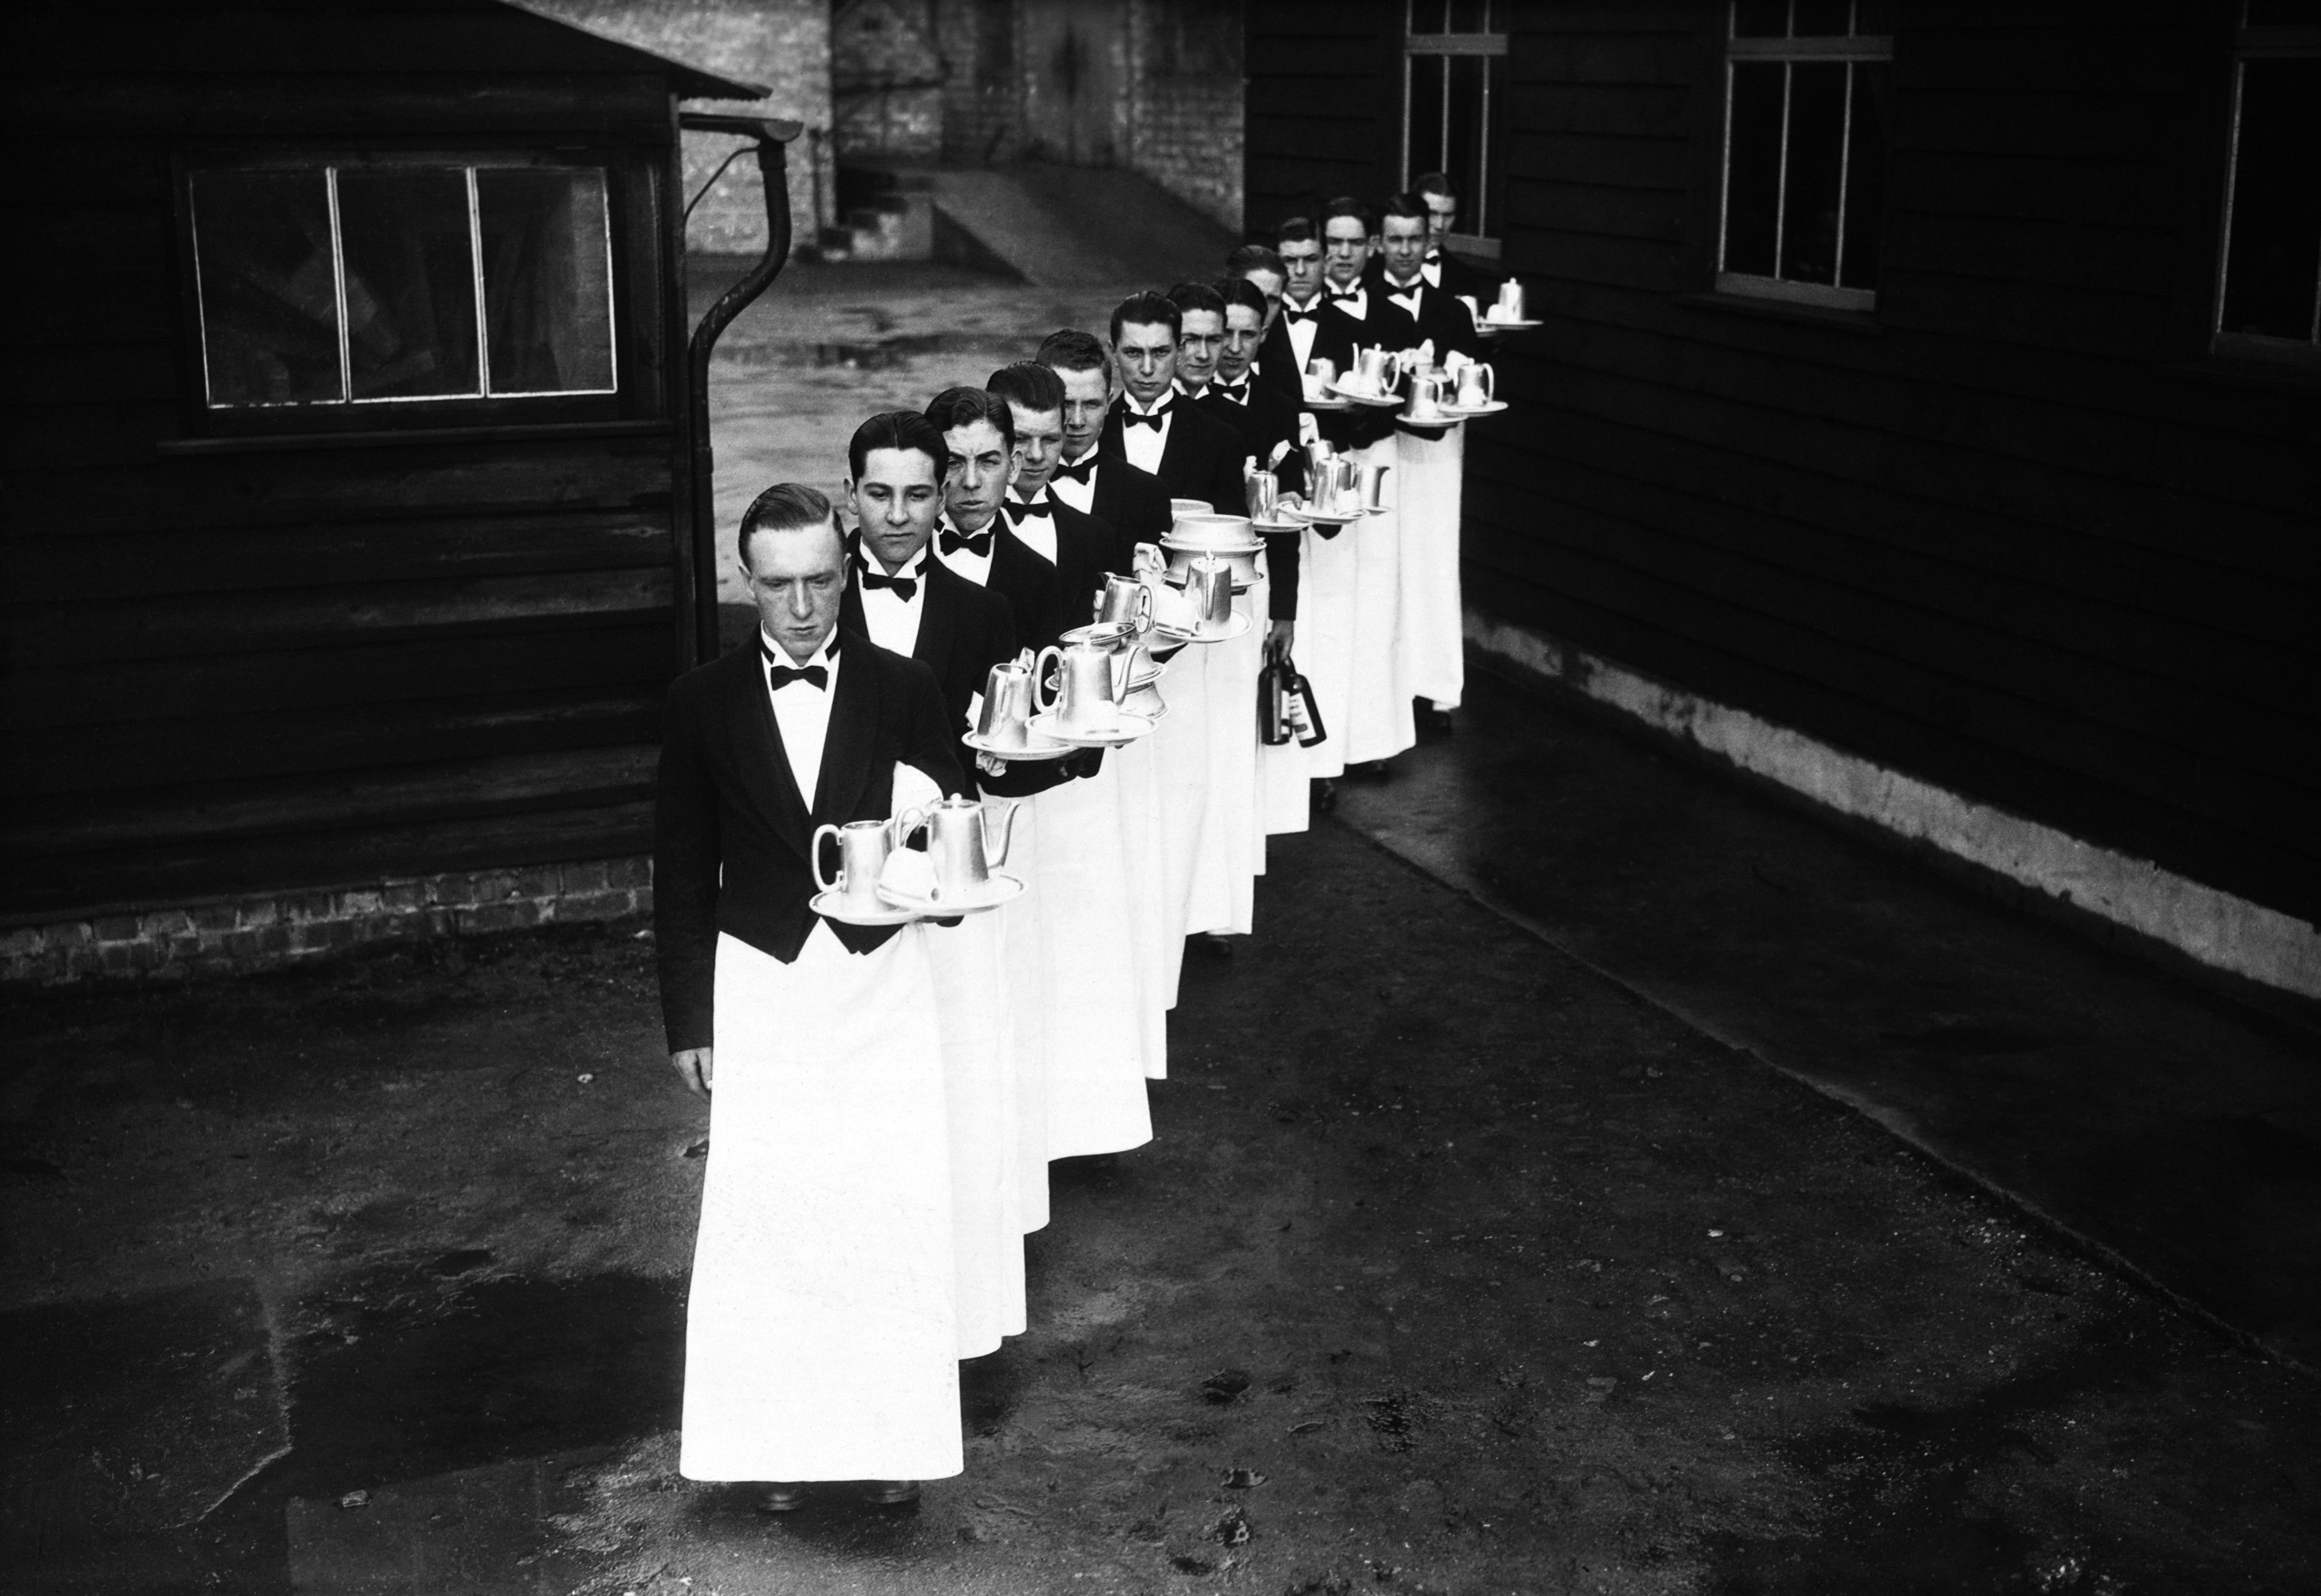 aspiring-waiters-with-their-trays-at-a-deportment-class-at-londons-school-for-waiters-1934